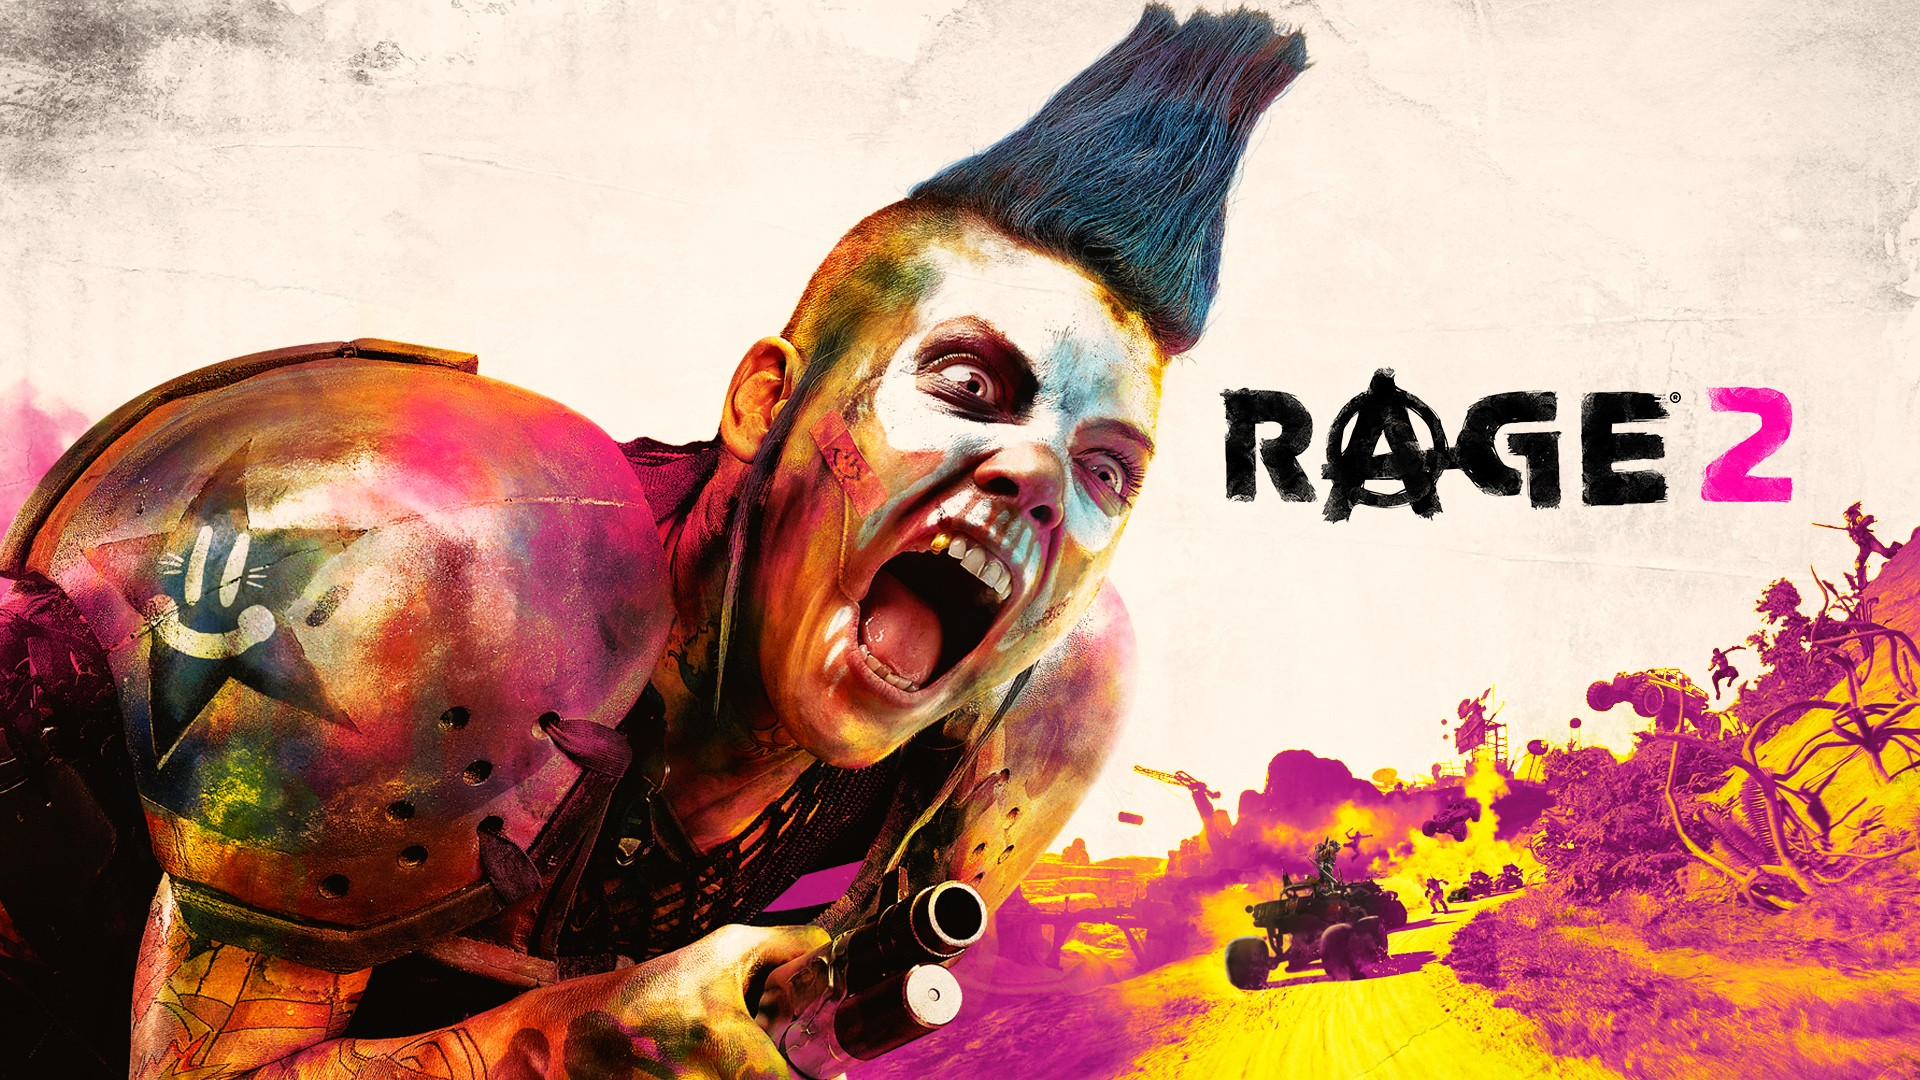 rage 2 game wallpaper 67451